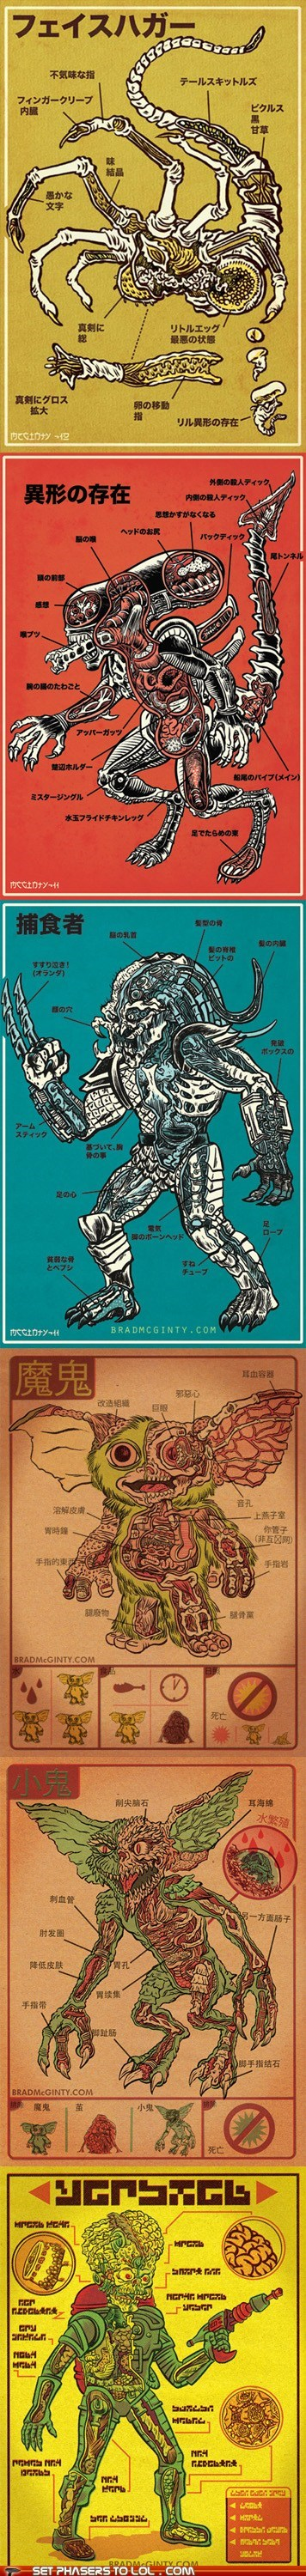 Aliens,anatomy,face huggers,Fan Art,gremlins,mars attacks,martians,mogwai,Predator,xenomorphs